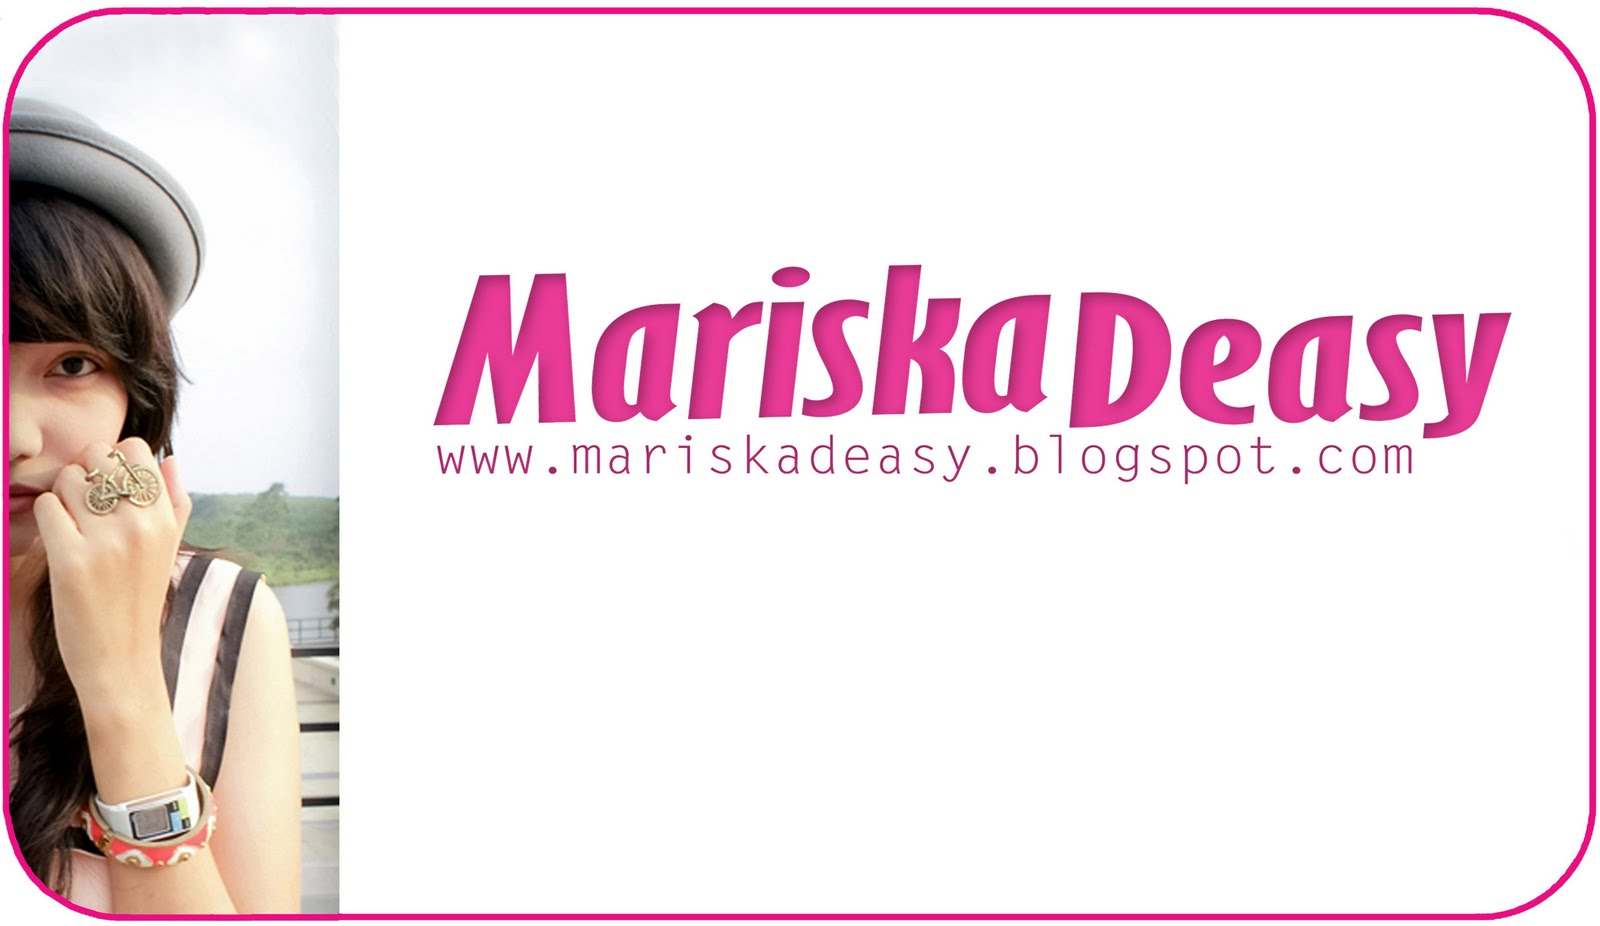 mariska deasy